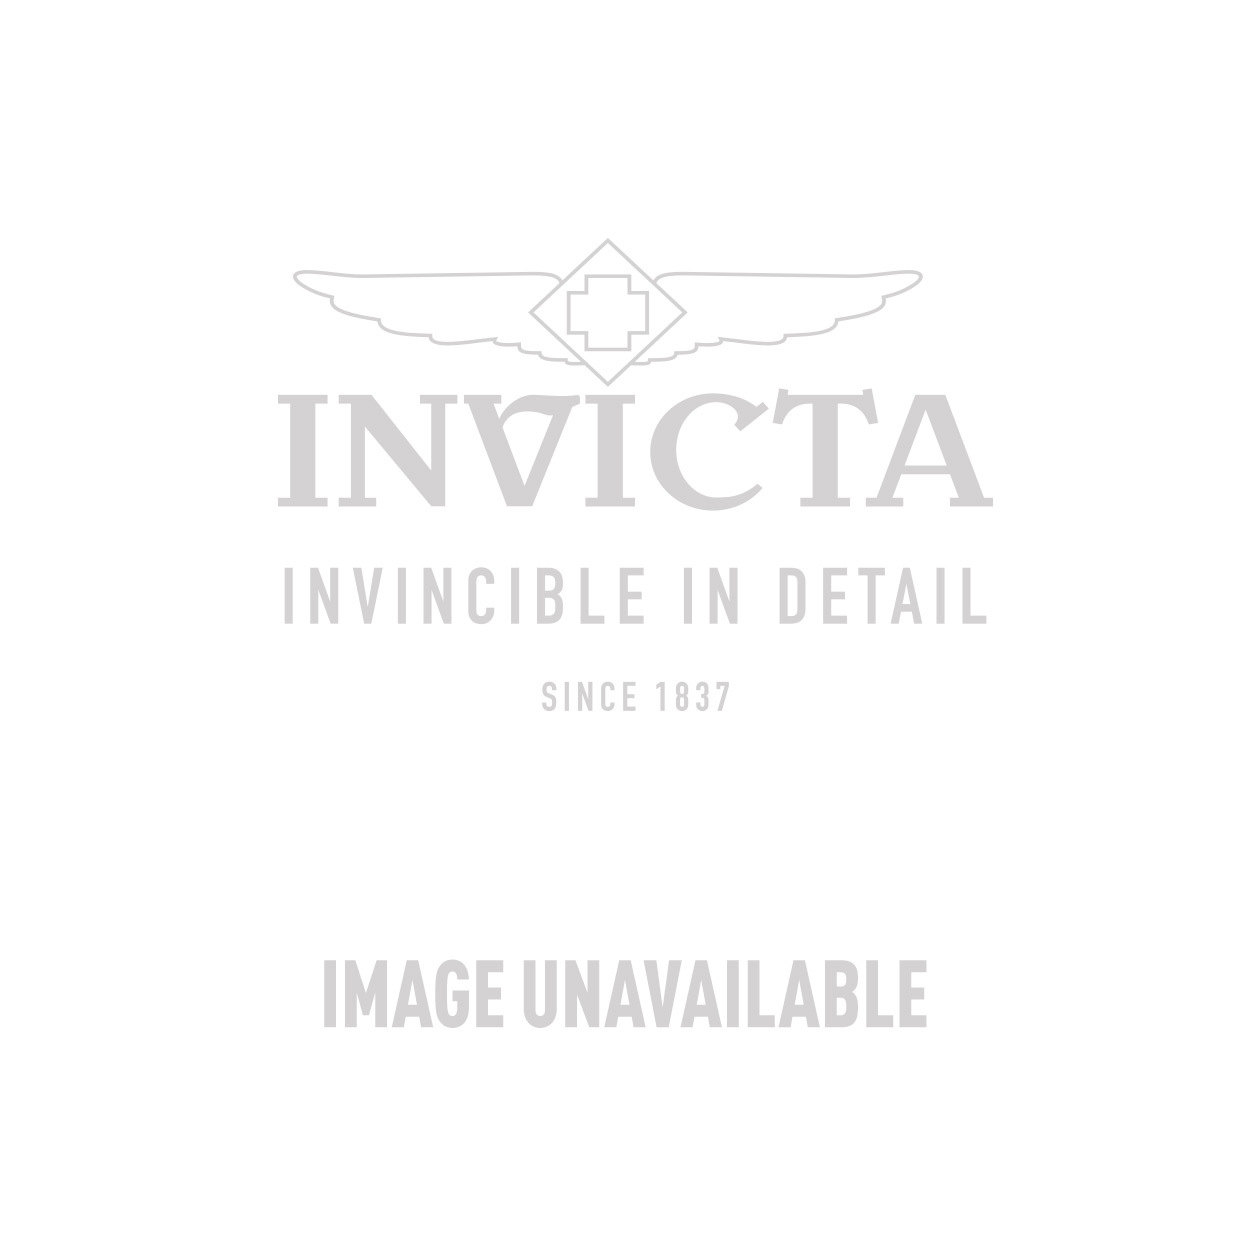 Invicta Vintage Swiss Movement Quartz Watch - Gold case with Black tone Leather band - Model 12244